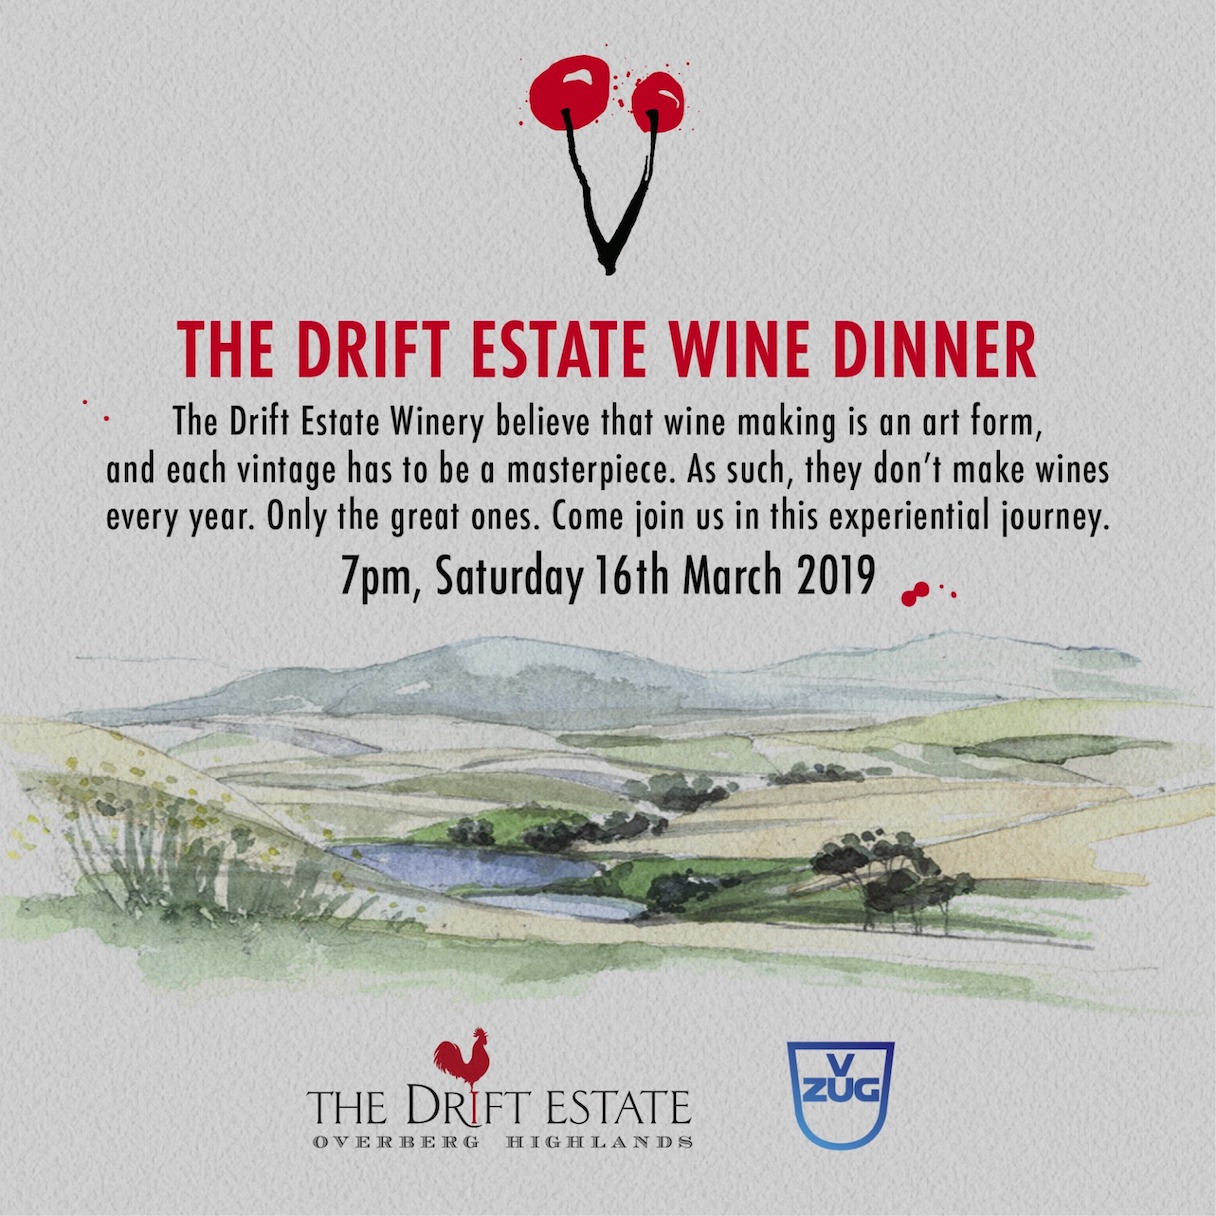 The Drift wine dinner